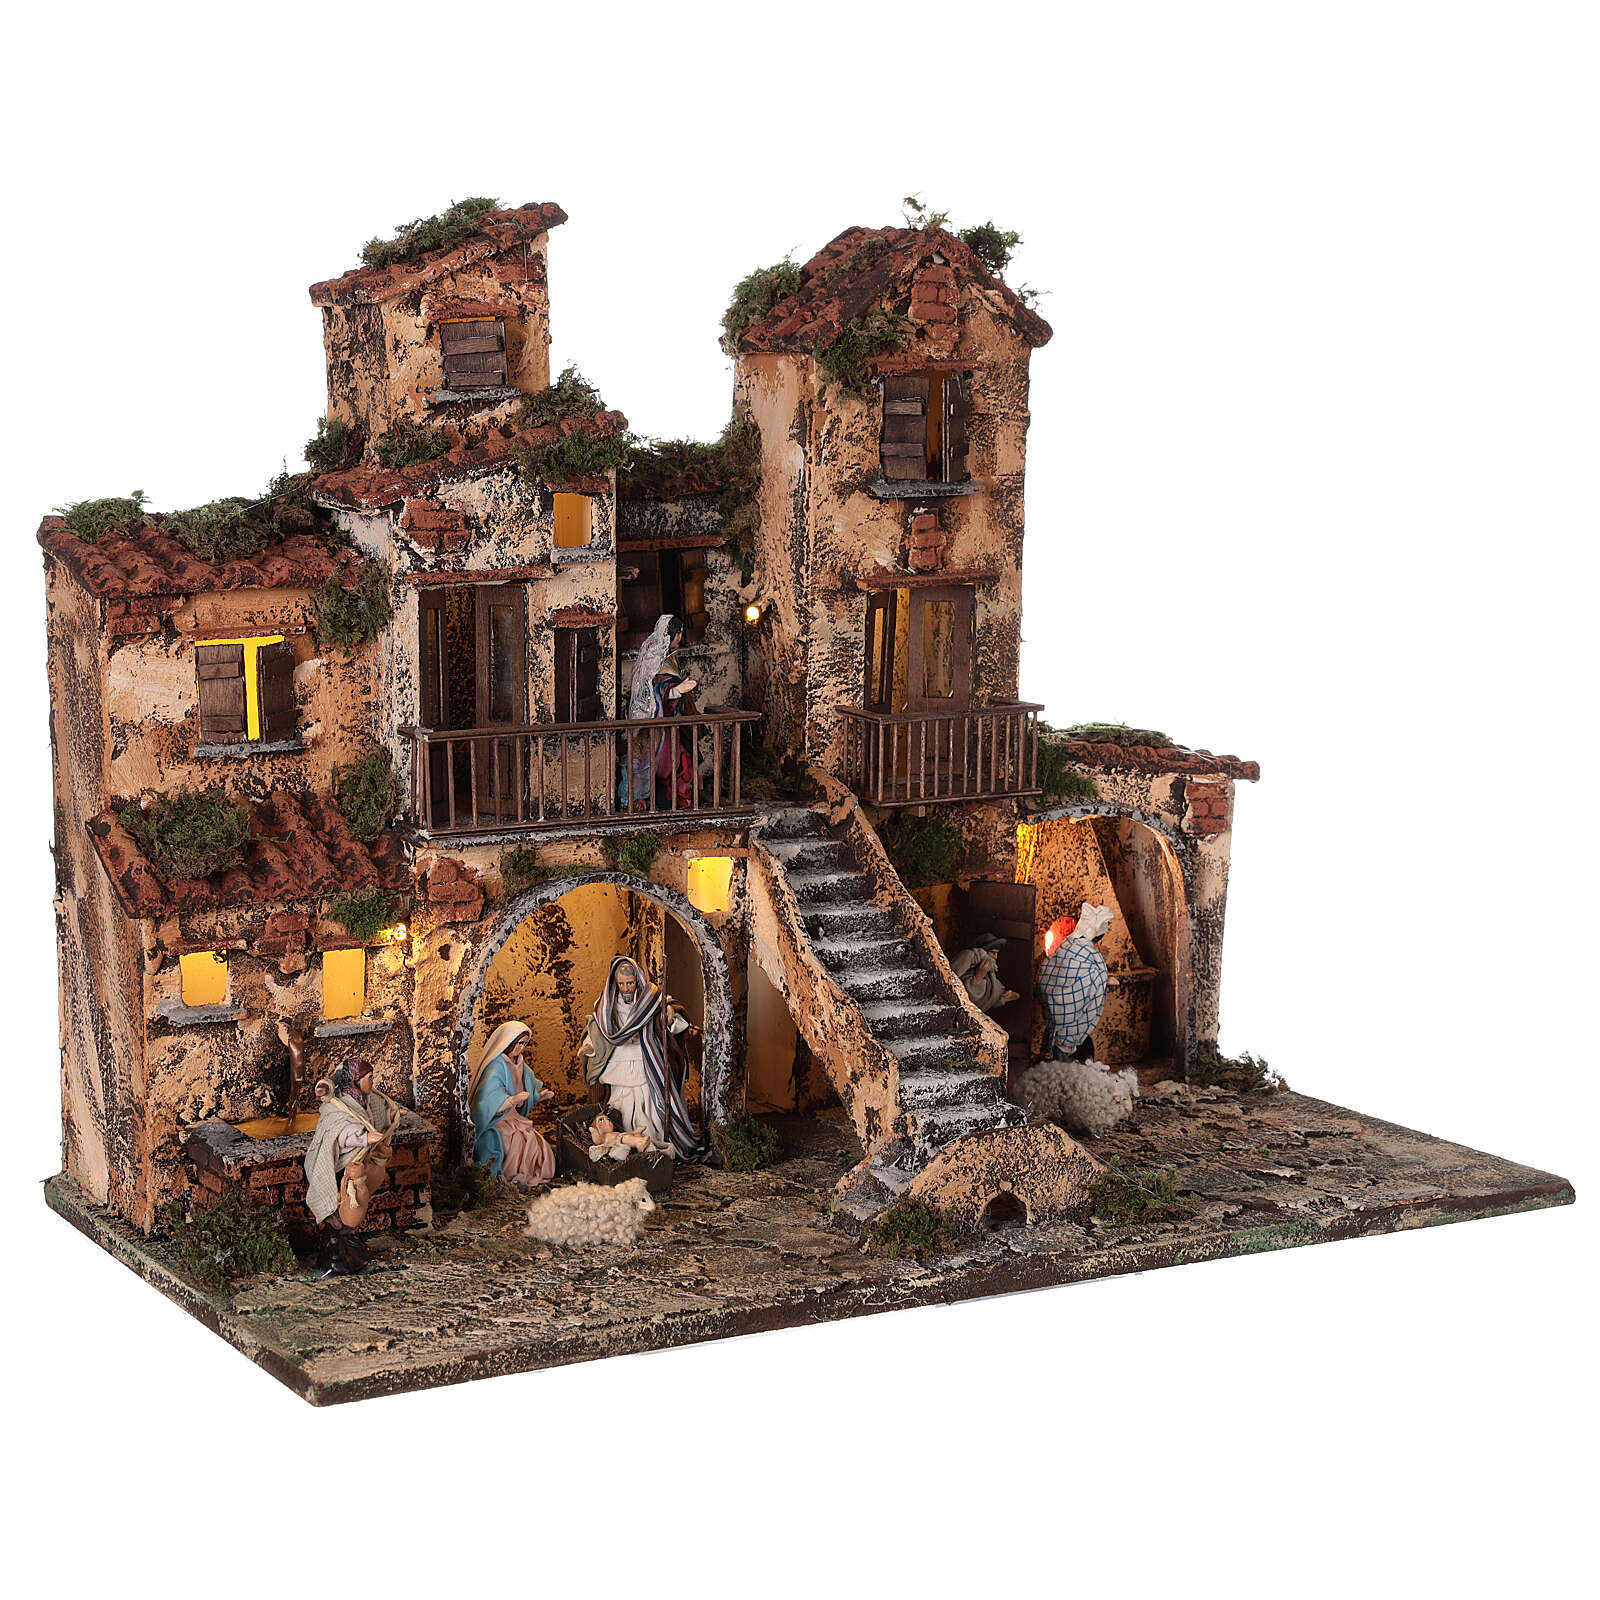 Complete Neapolitan Nativity Scene village stairs fountain oven lights and figurines 40x50x30 cm 4